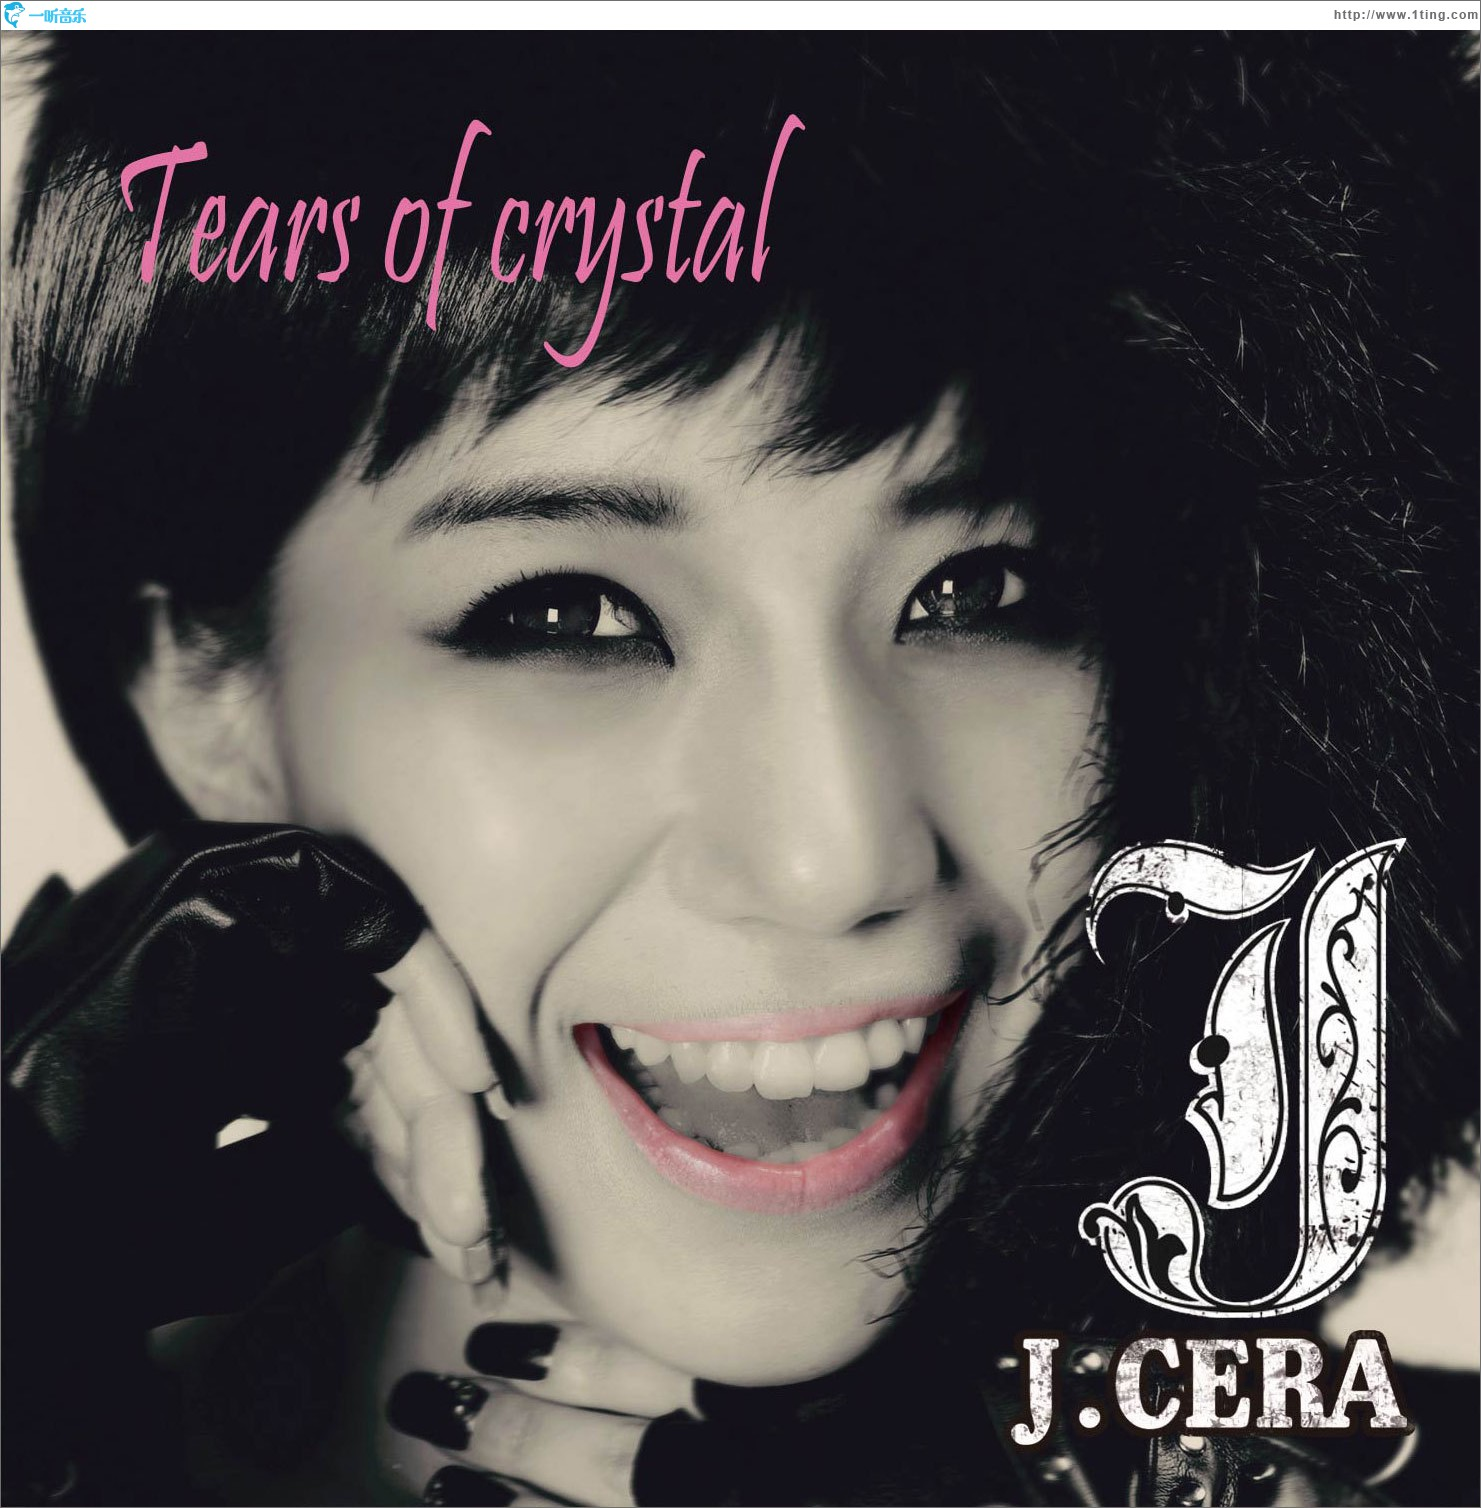 Tears of crystal